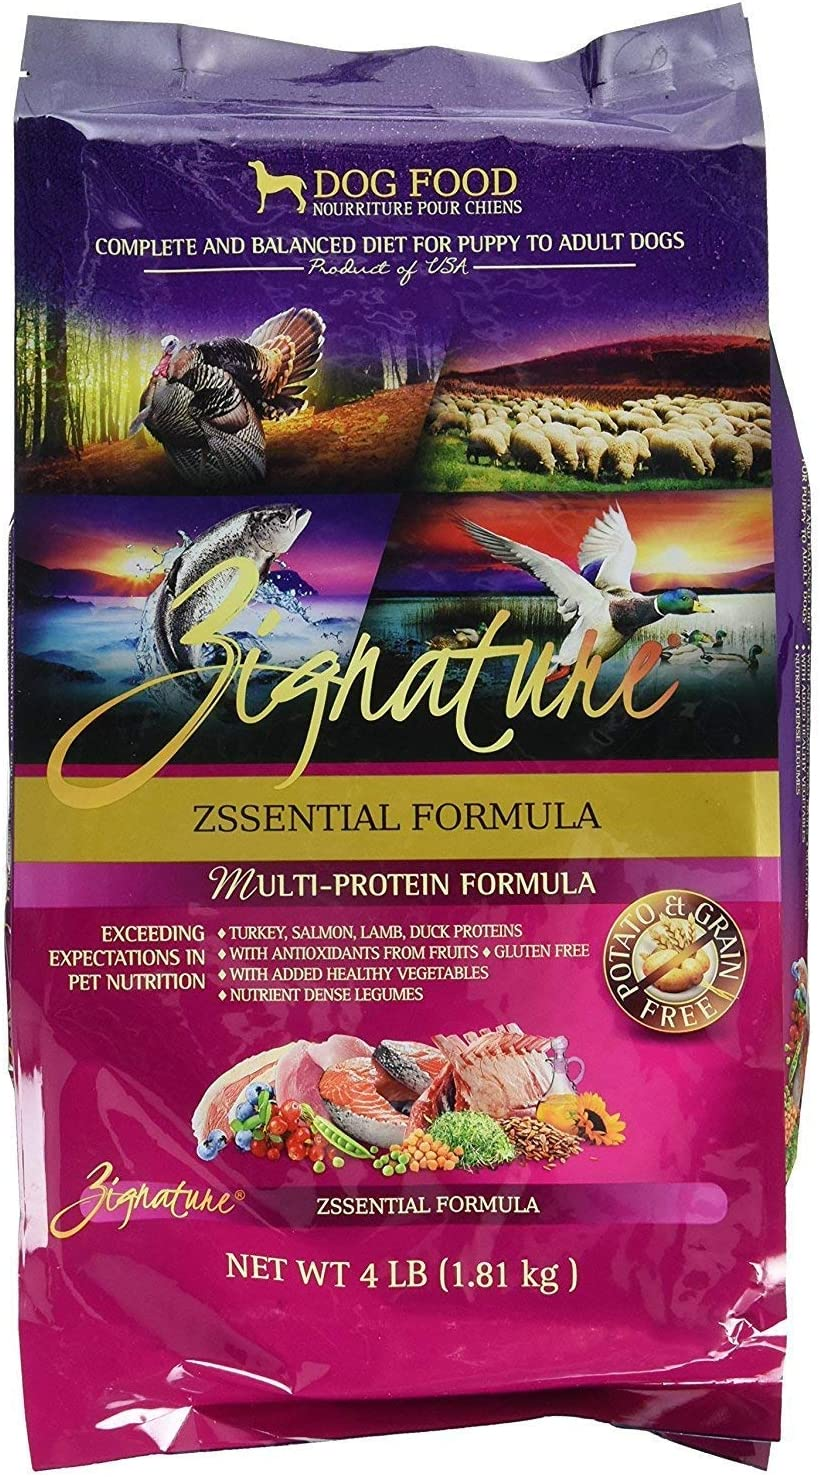 Zignature Zssentials Dry Dog Food Formula 4 lb. Bag, with Turkey, Lamb, Duck & Salmon. Fast Delivery. by Just Jak's Pet Market